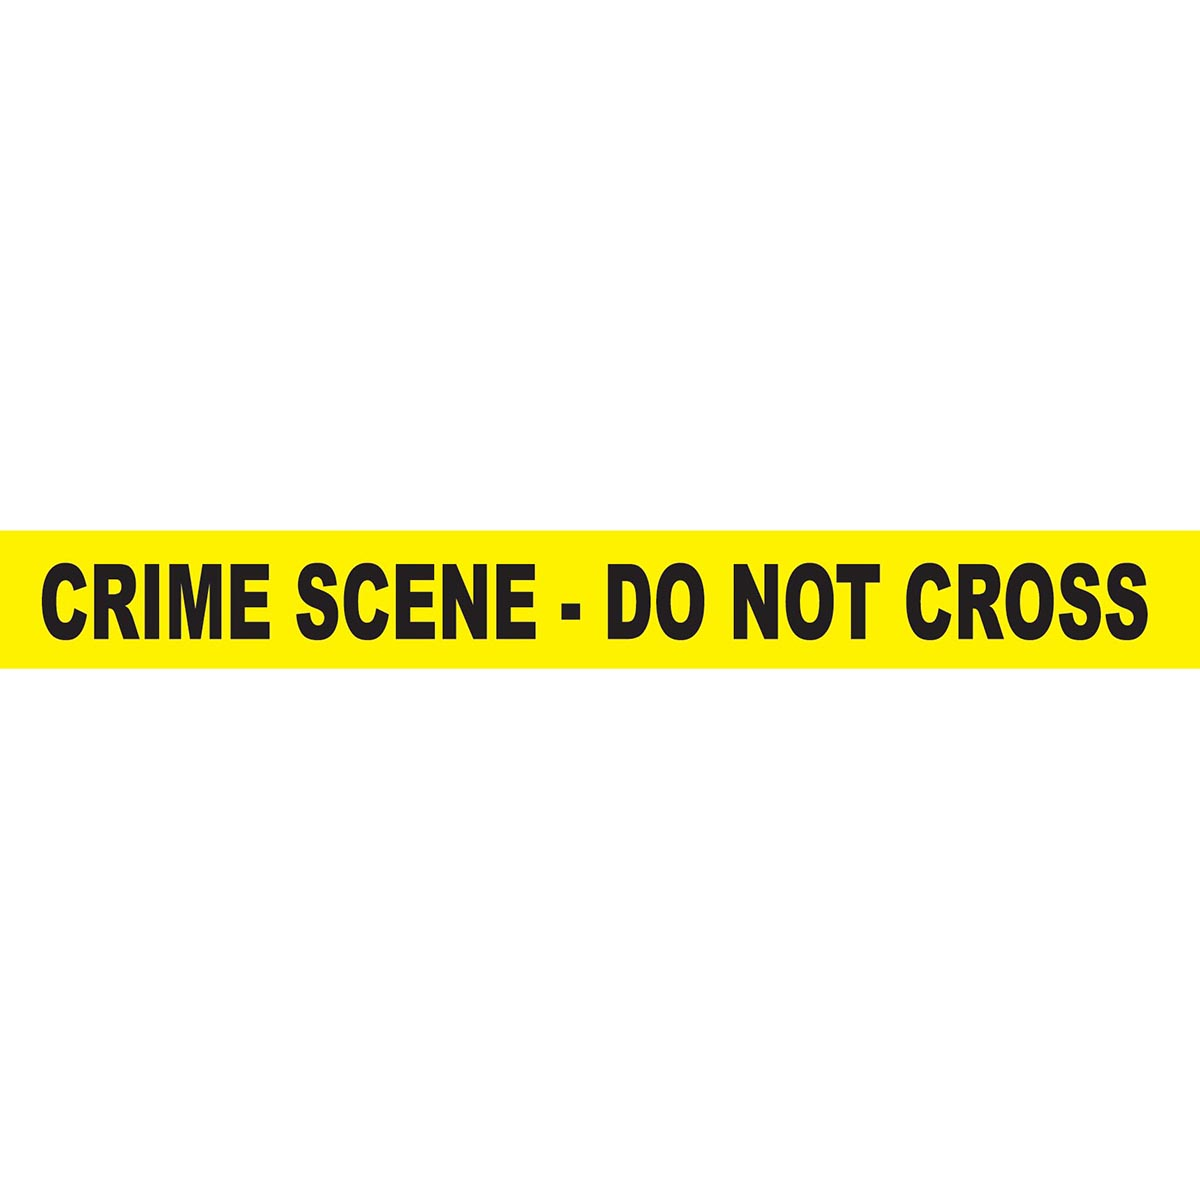 Police Tape Do Not Cross Tape Do Not Cross - Clipart Kid